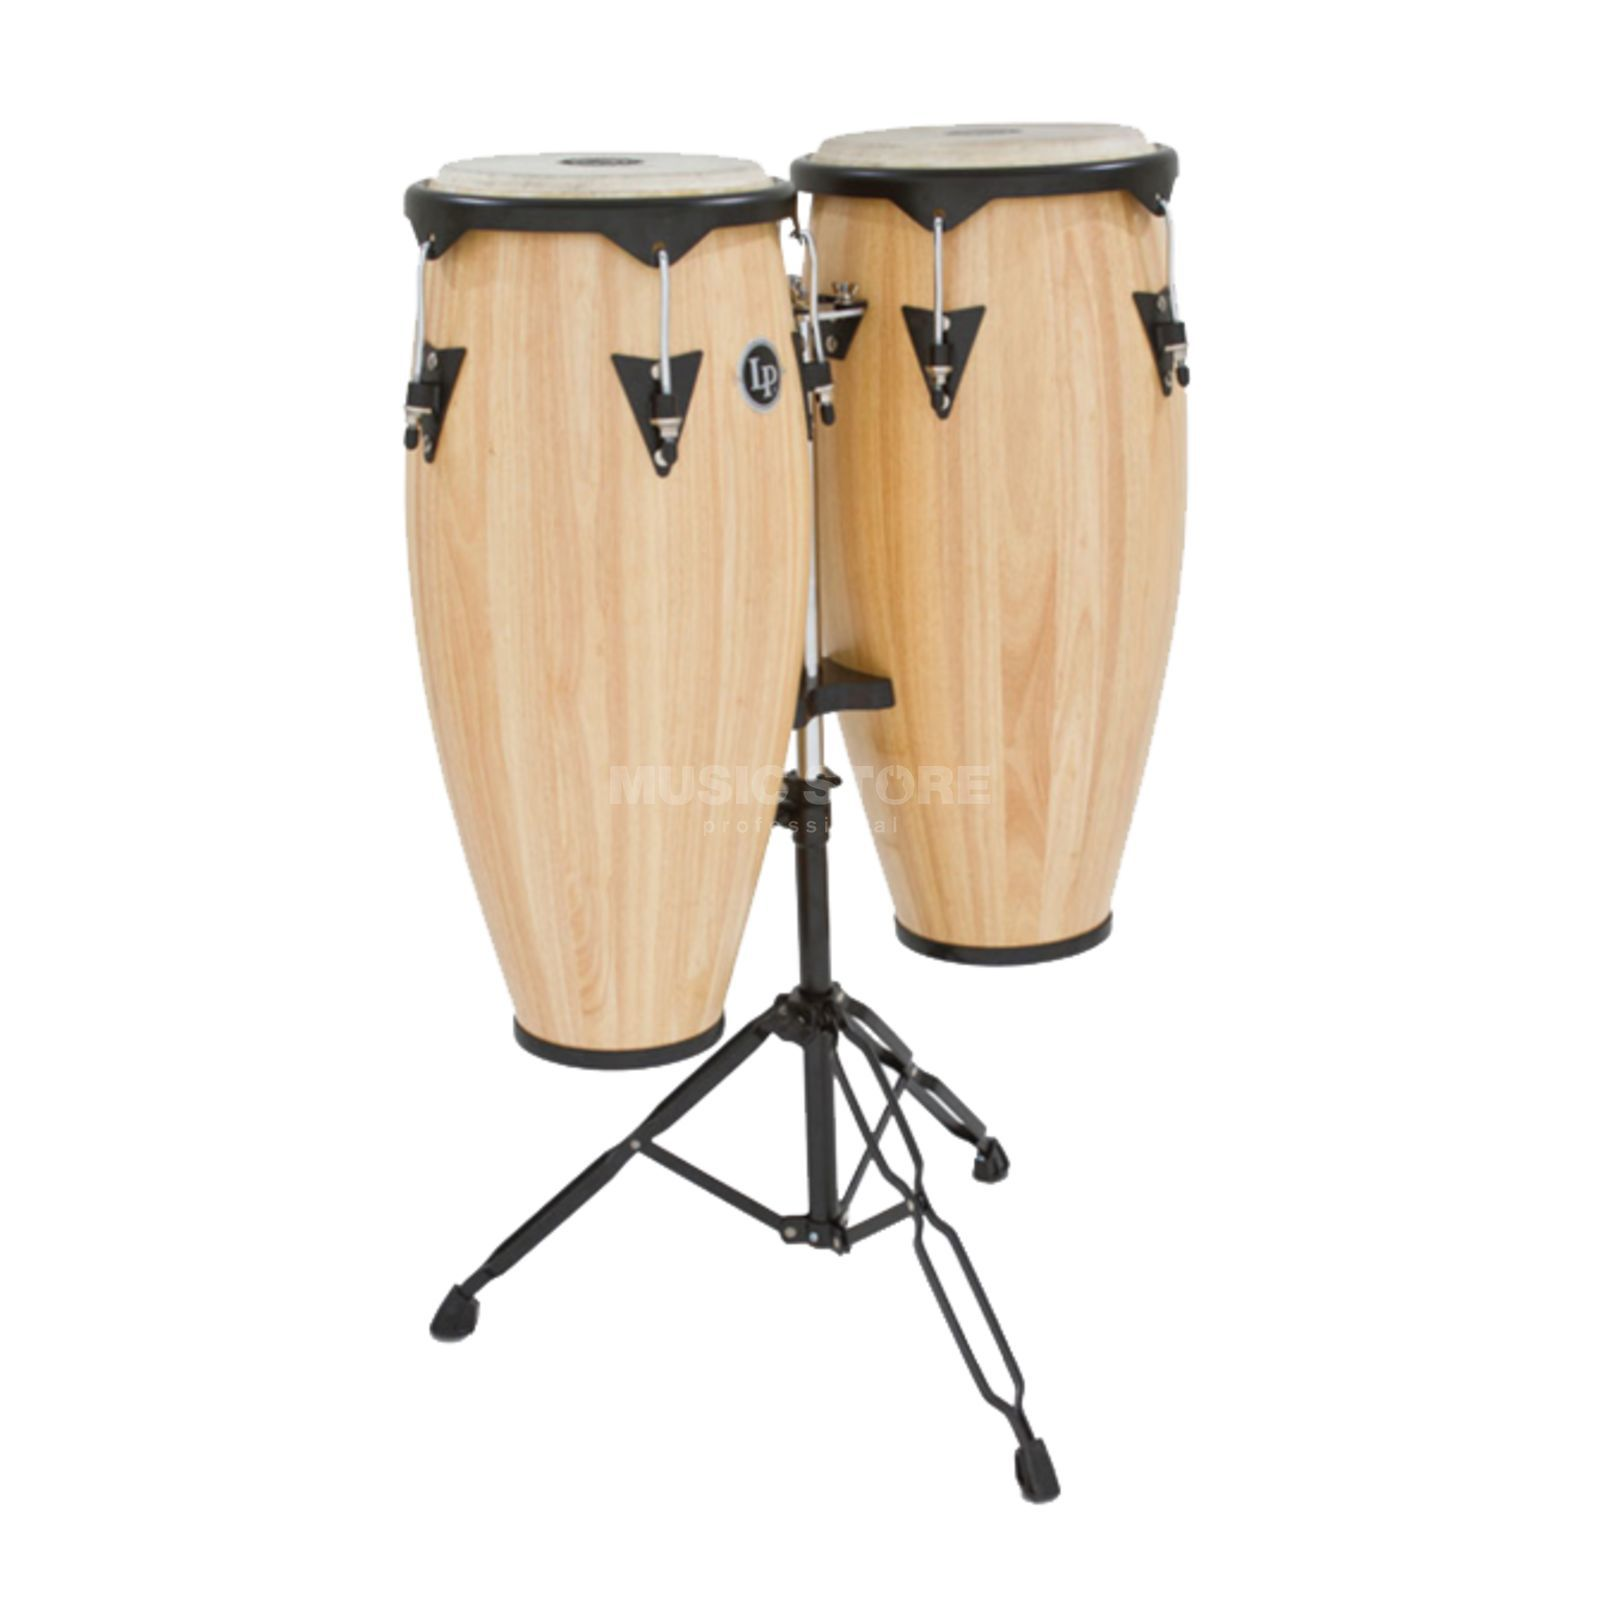 "Latin Percussion City Conga Set LP646NY-AW, 10"" & 11"", Natural Produktbild"